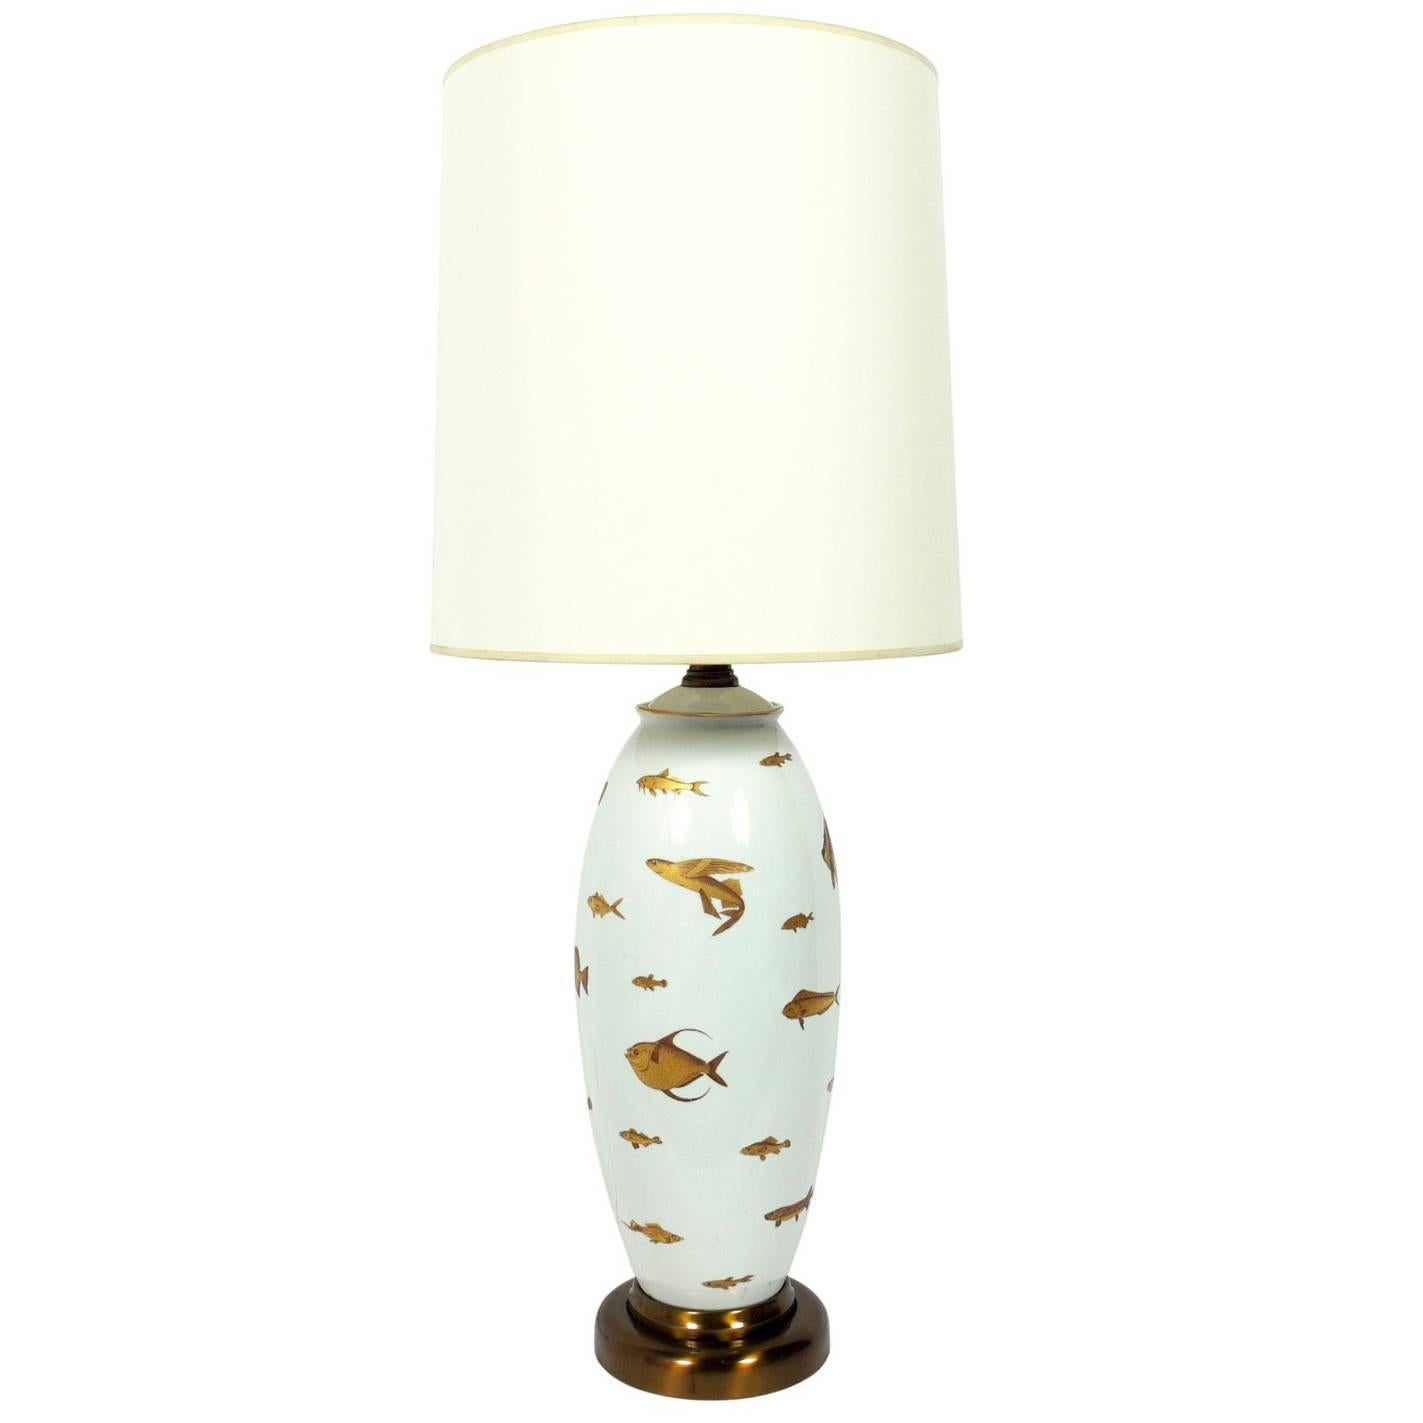 White And Gold Porcelain Fish Lamp For Sale